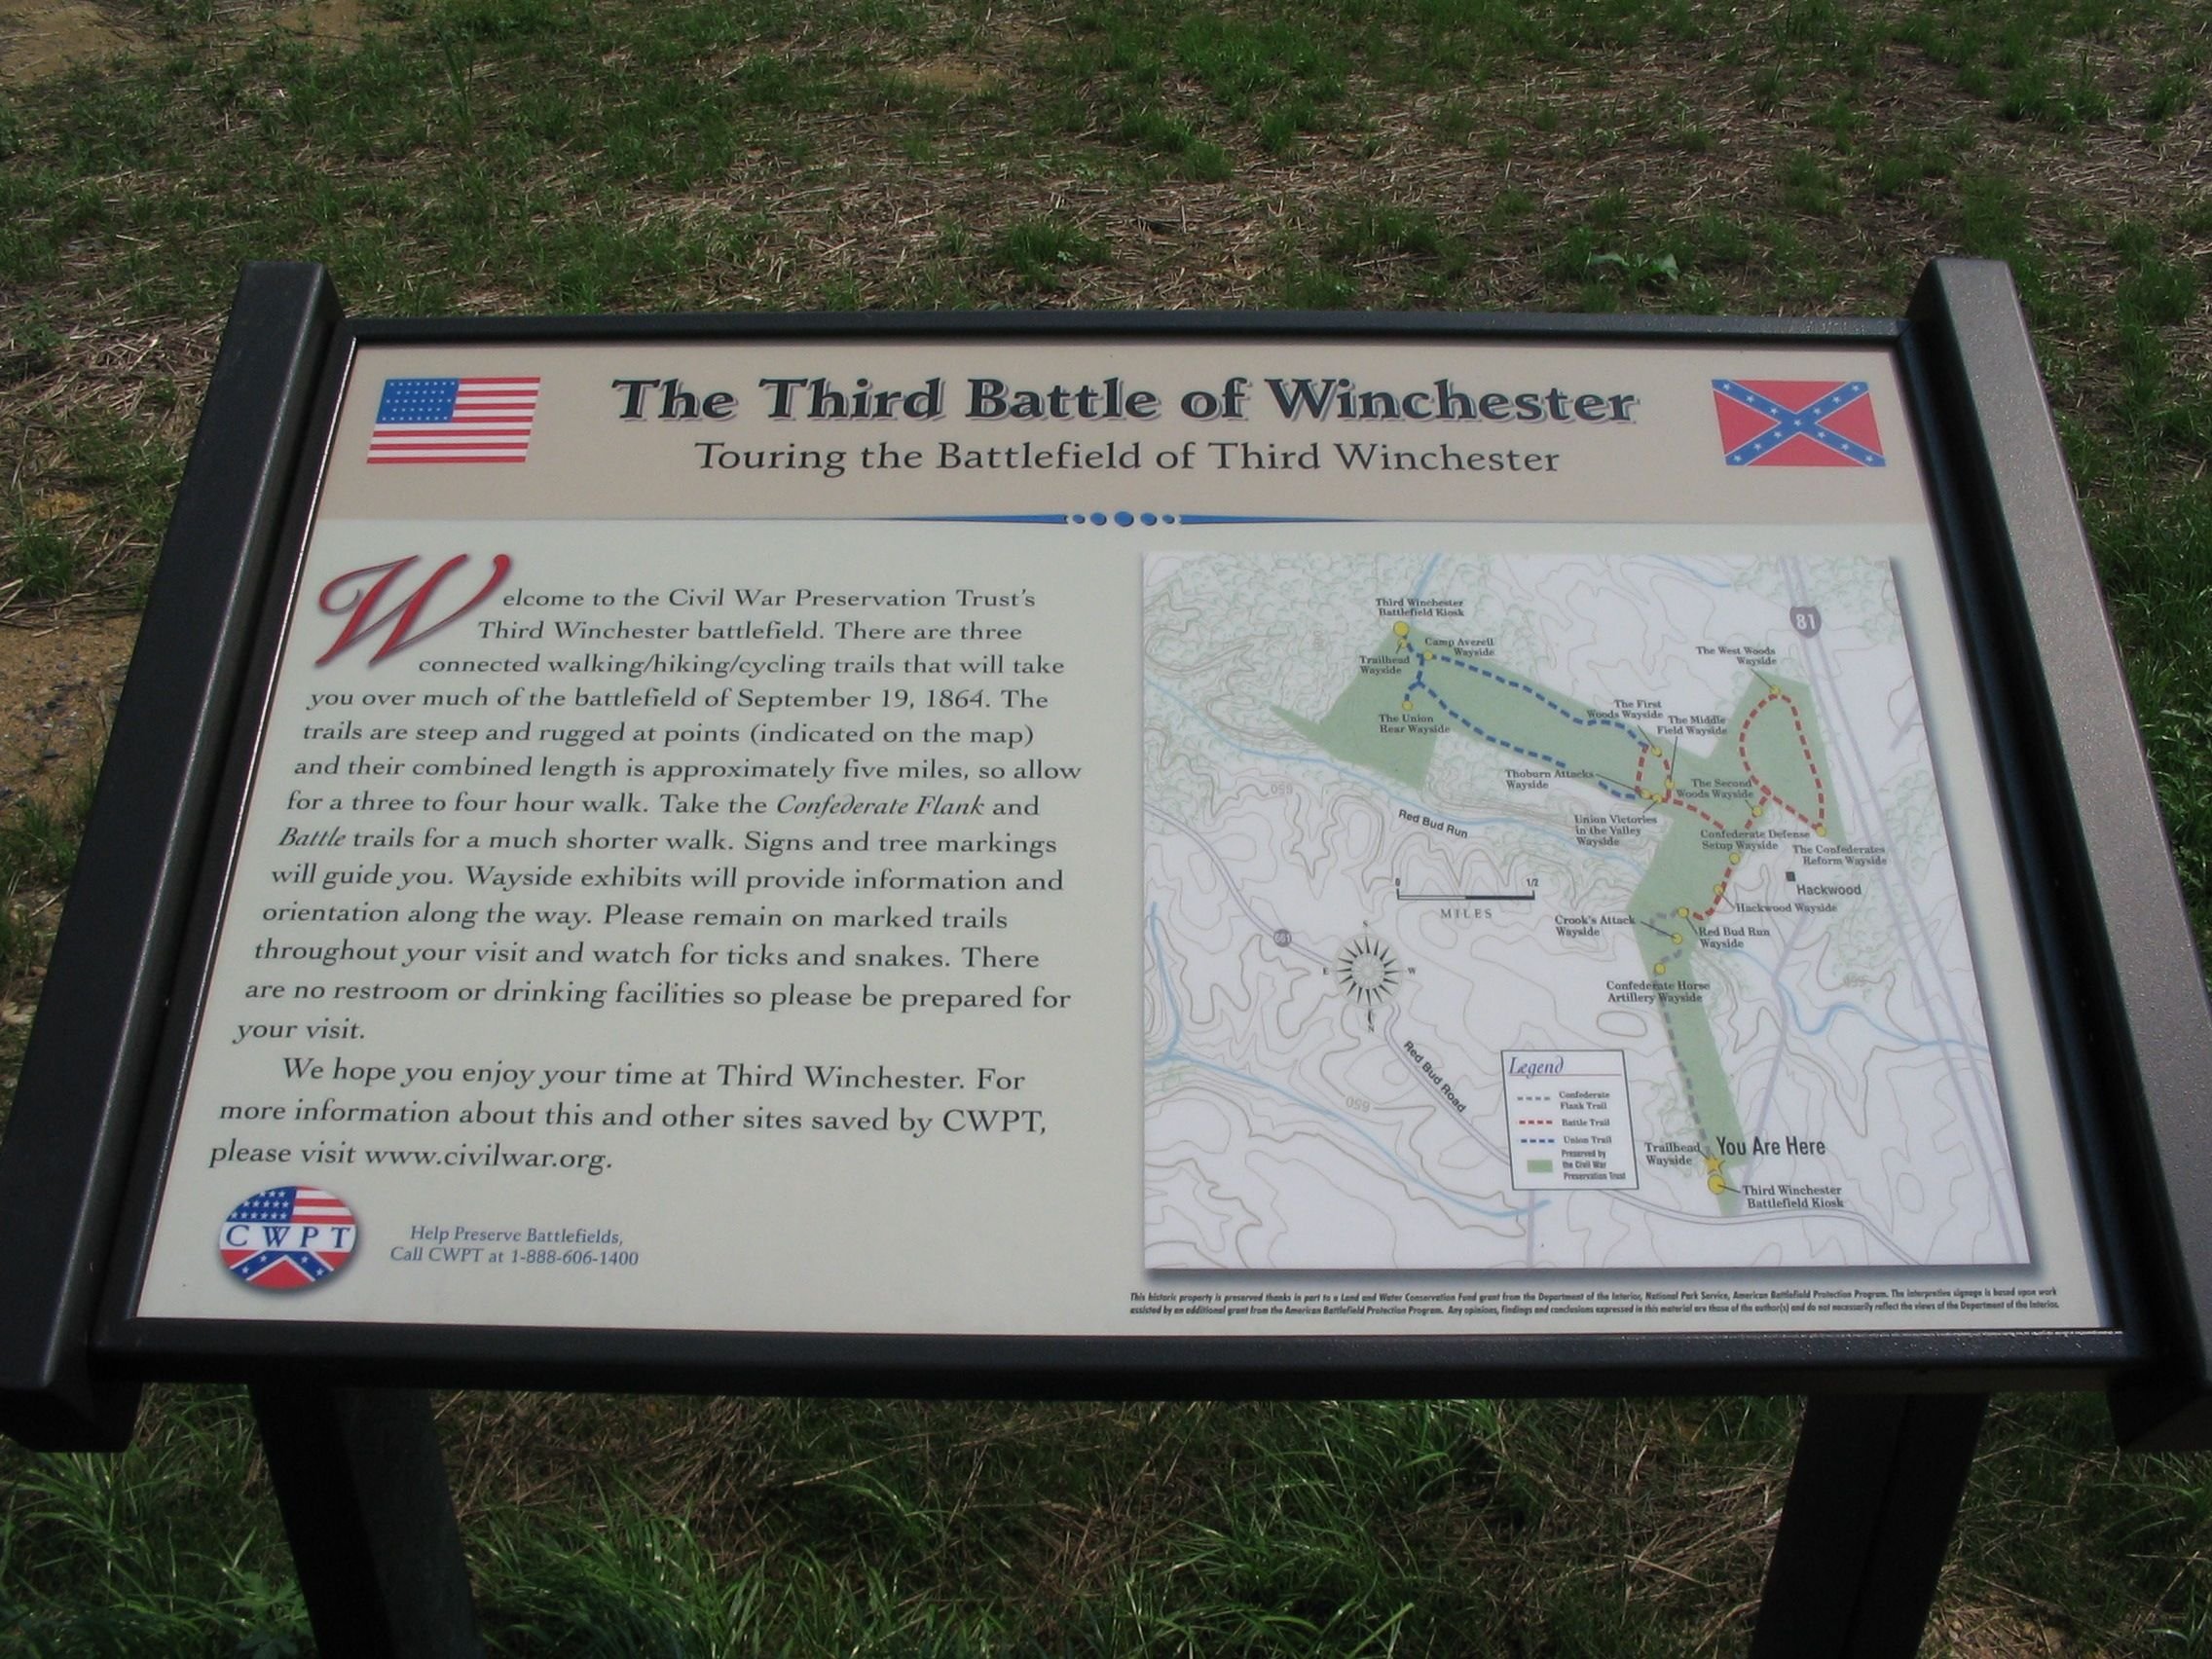 Touring the Battlefield of Third Winchester